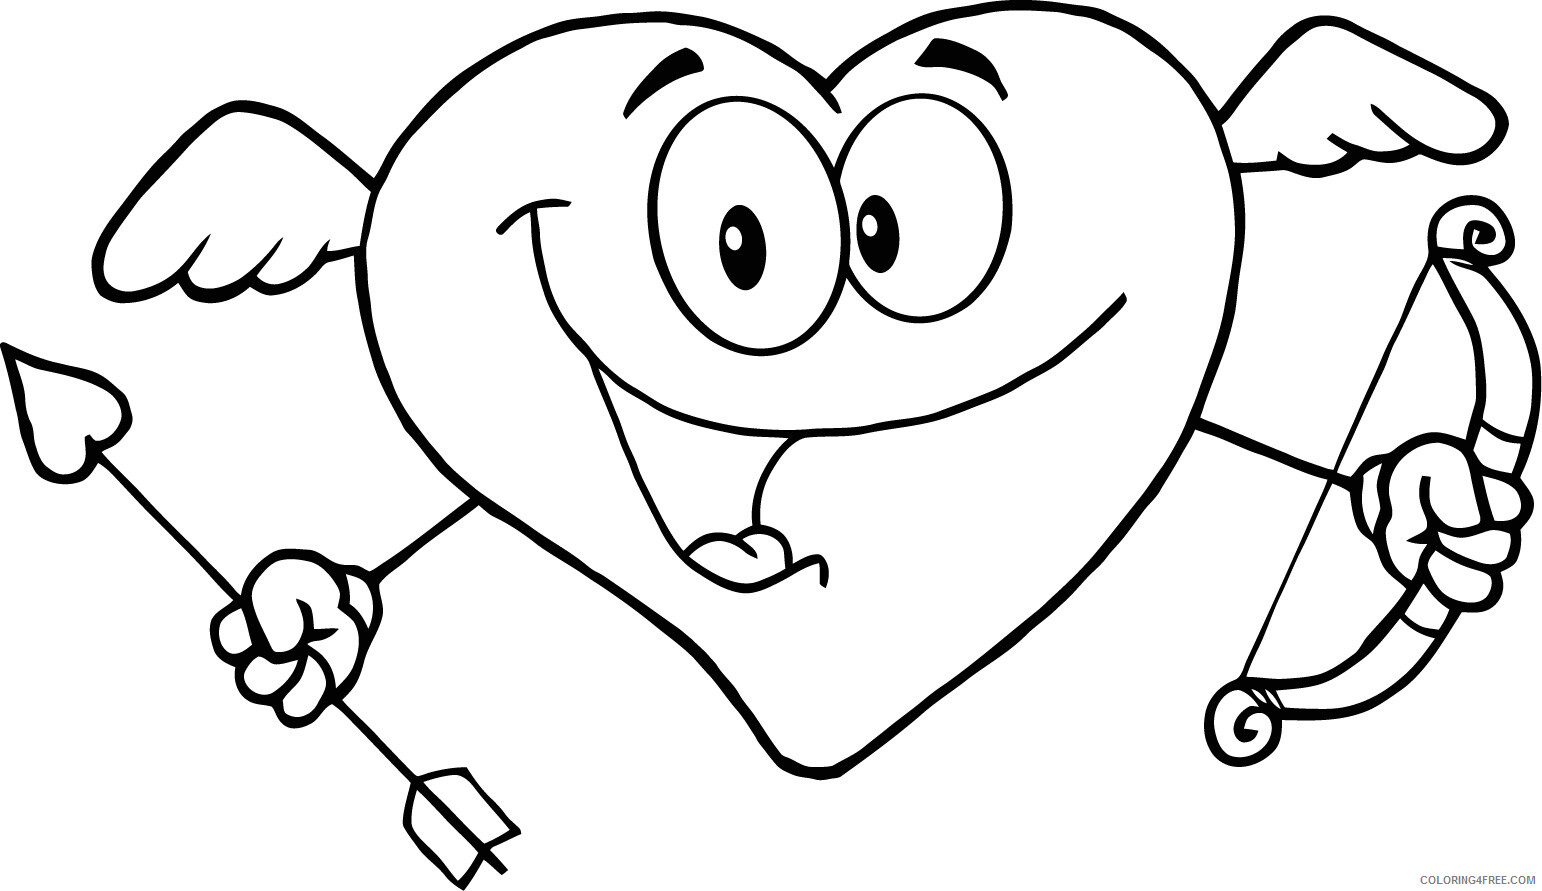 Heart Coloring Pages Heart with Wings Printable 2021 3160 Coloring4free